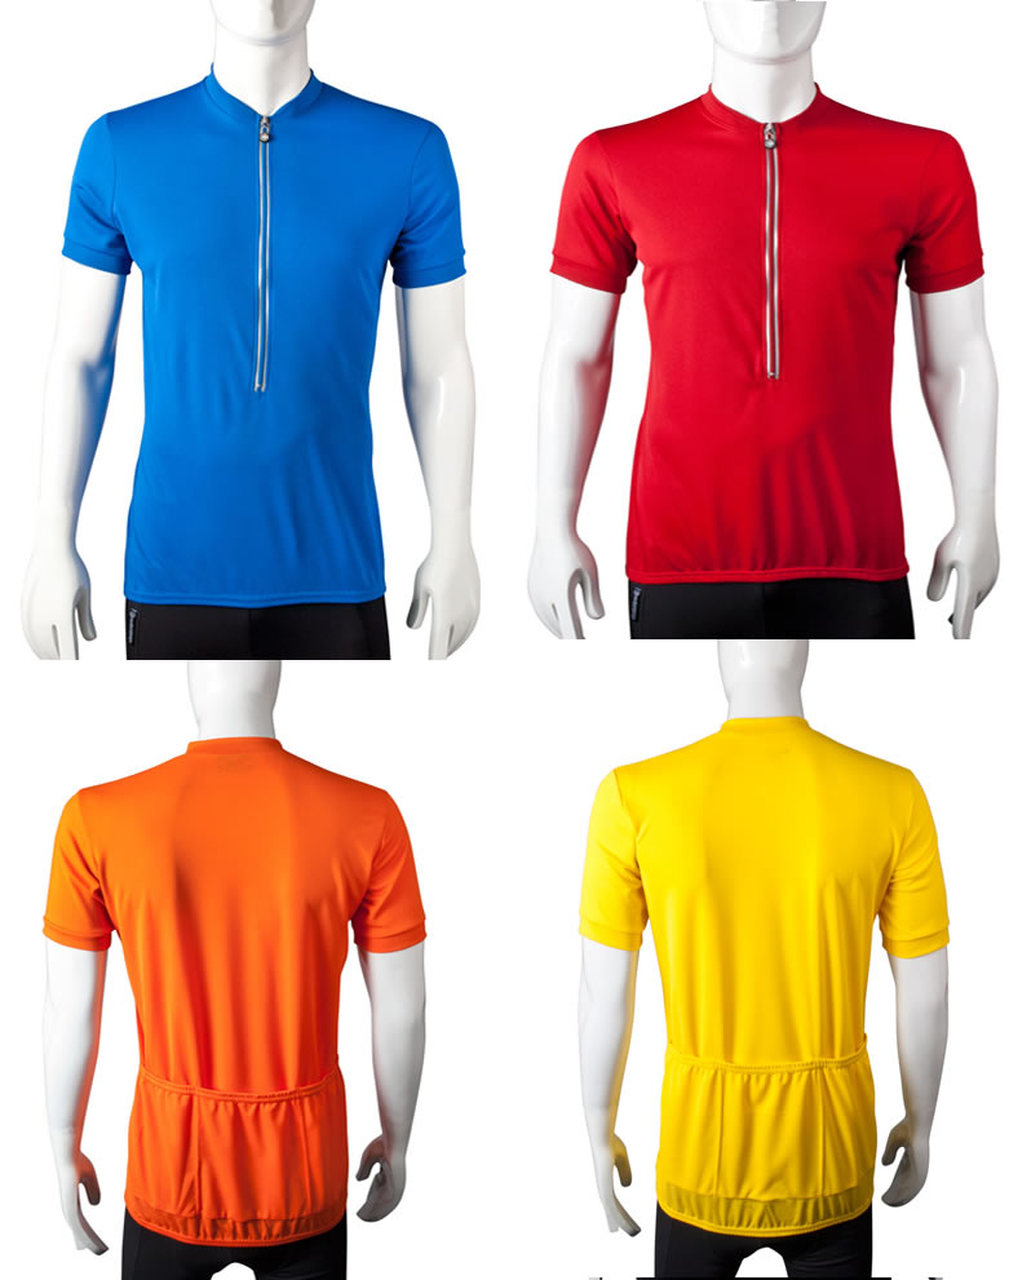 tall-mans-cycling-jerseys-icon.jpg